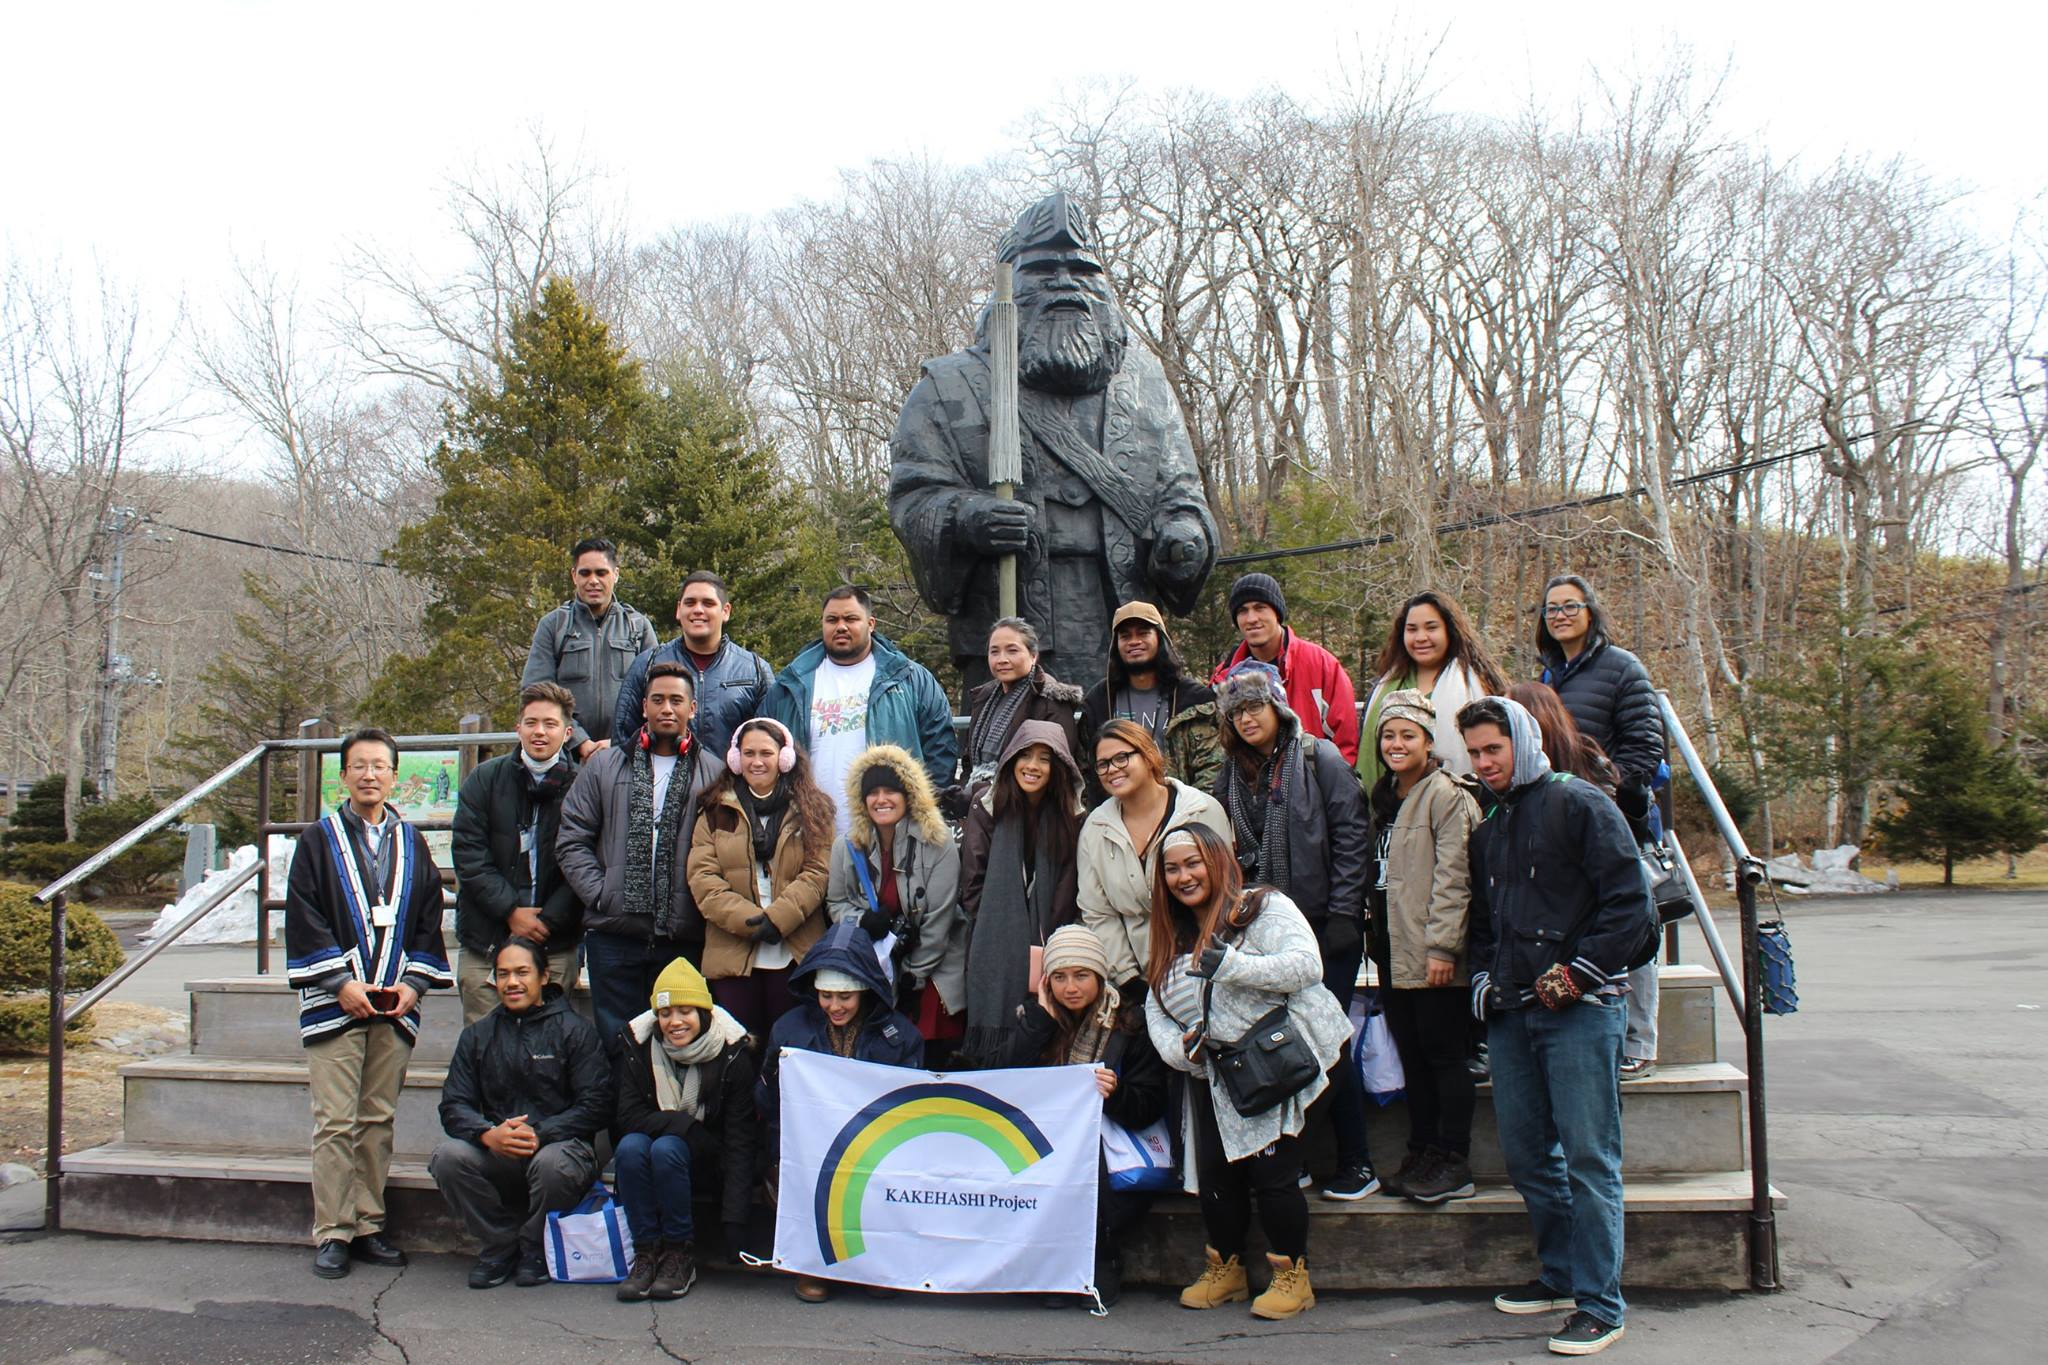 Group photo with a statue in background.